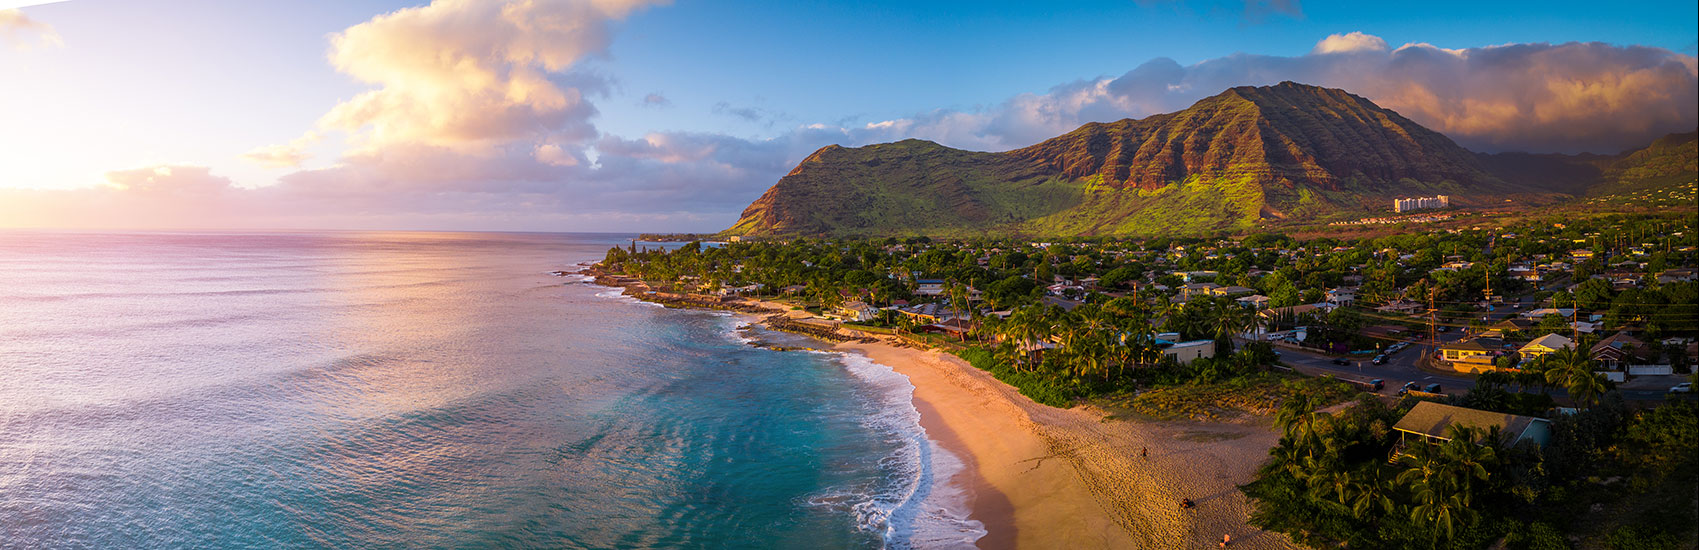 Save On Hawaii With Pleasant Holidays